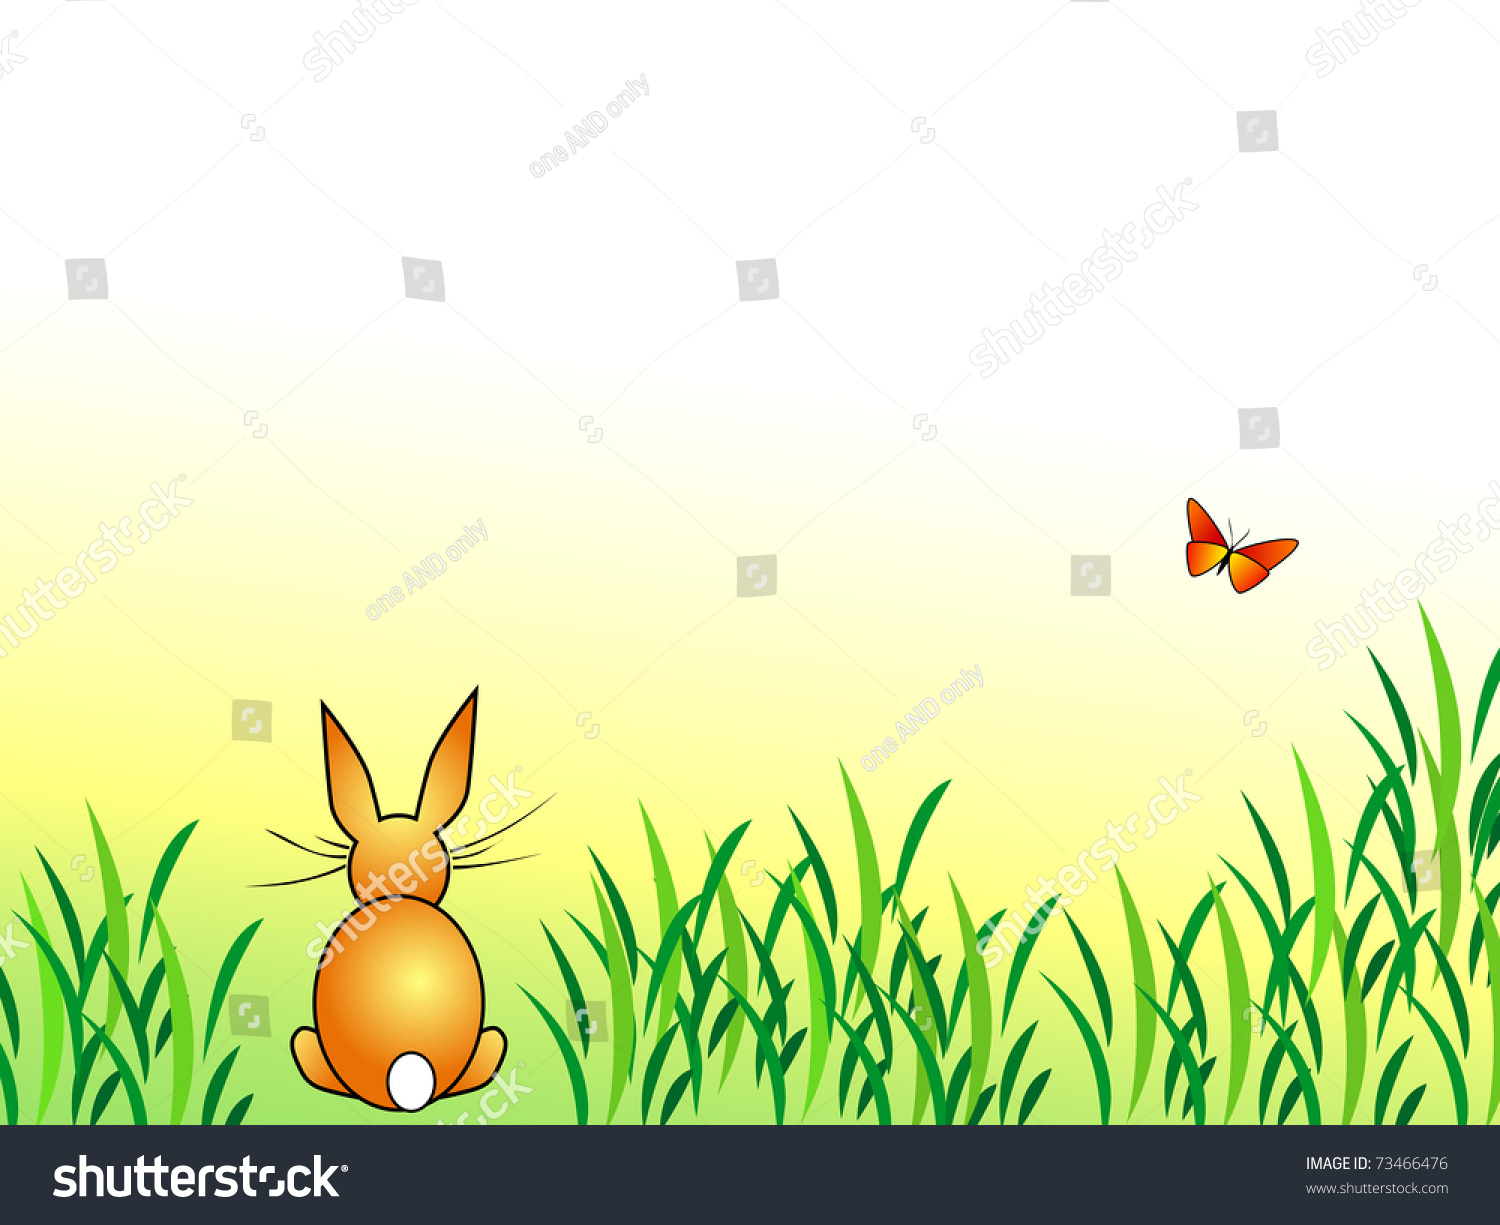 Rabbit Sitting In Green Grass With